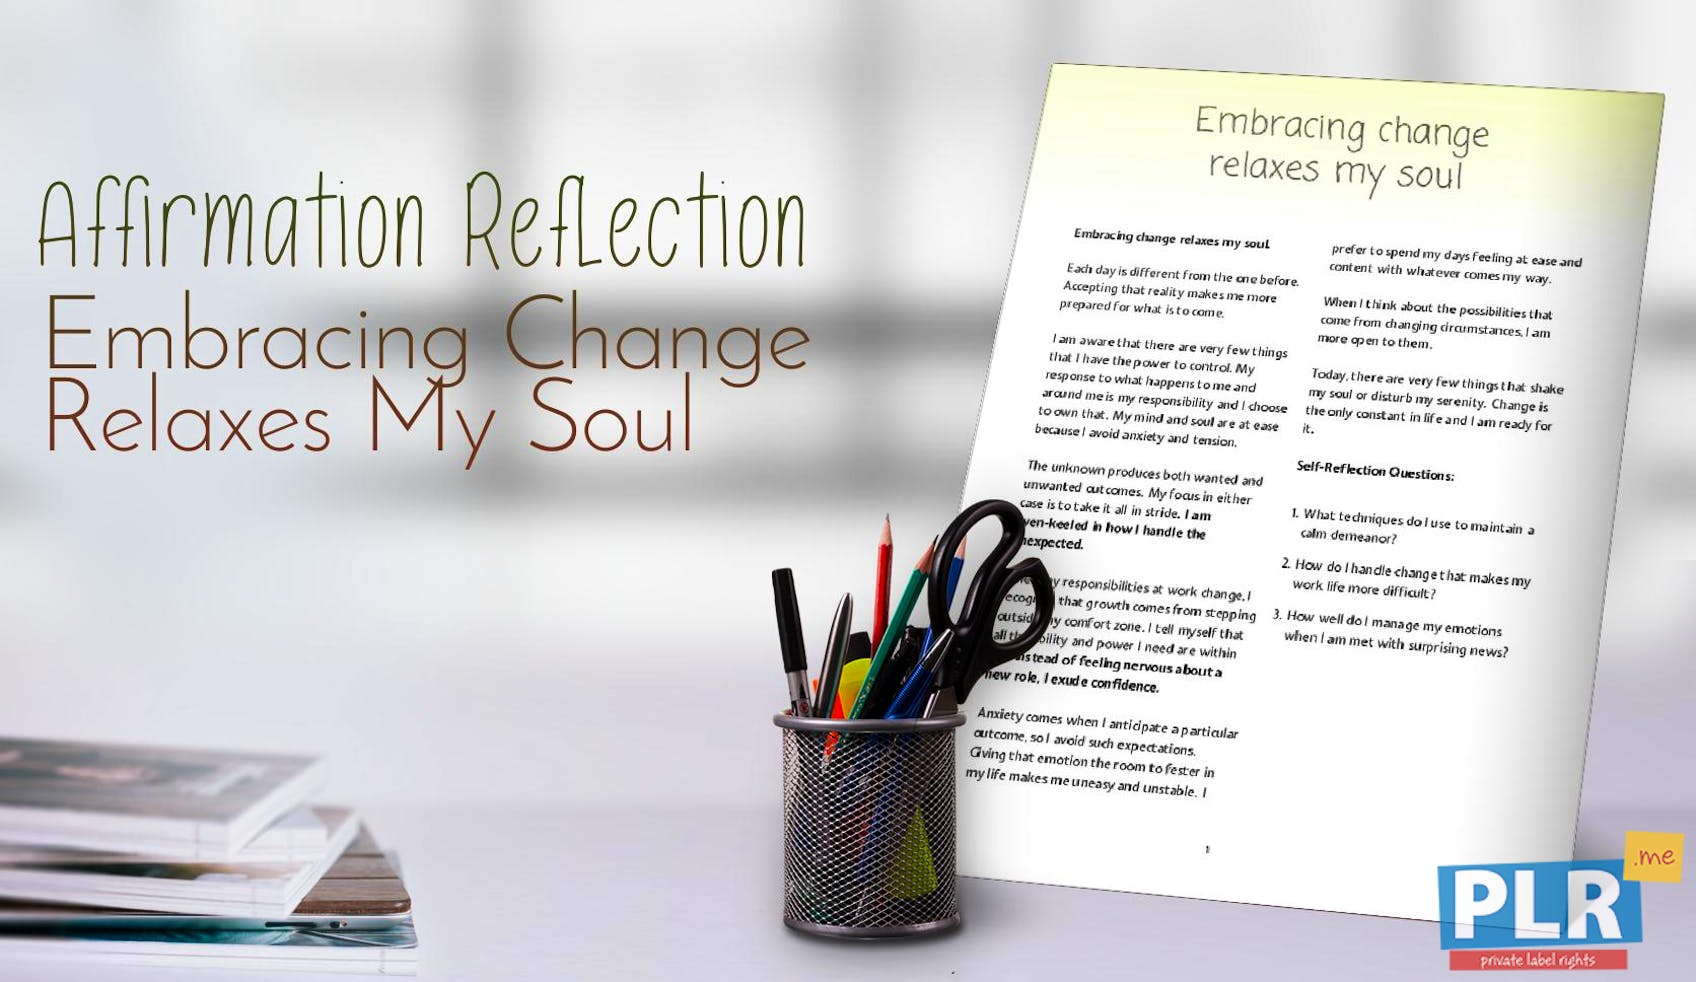 Embracing Change Relaxes My Soul